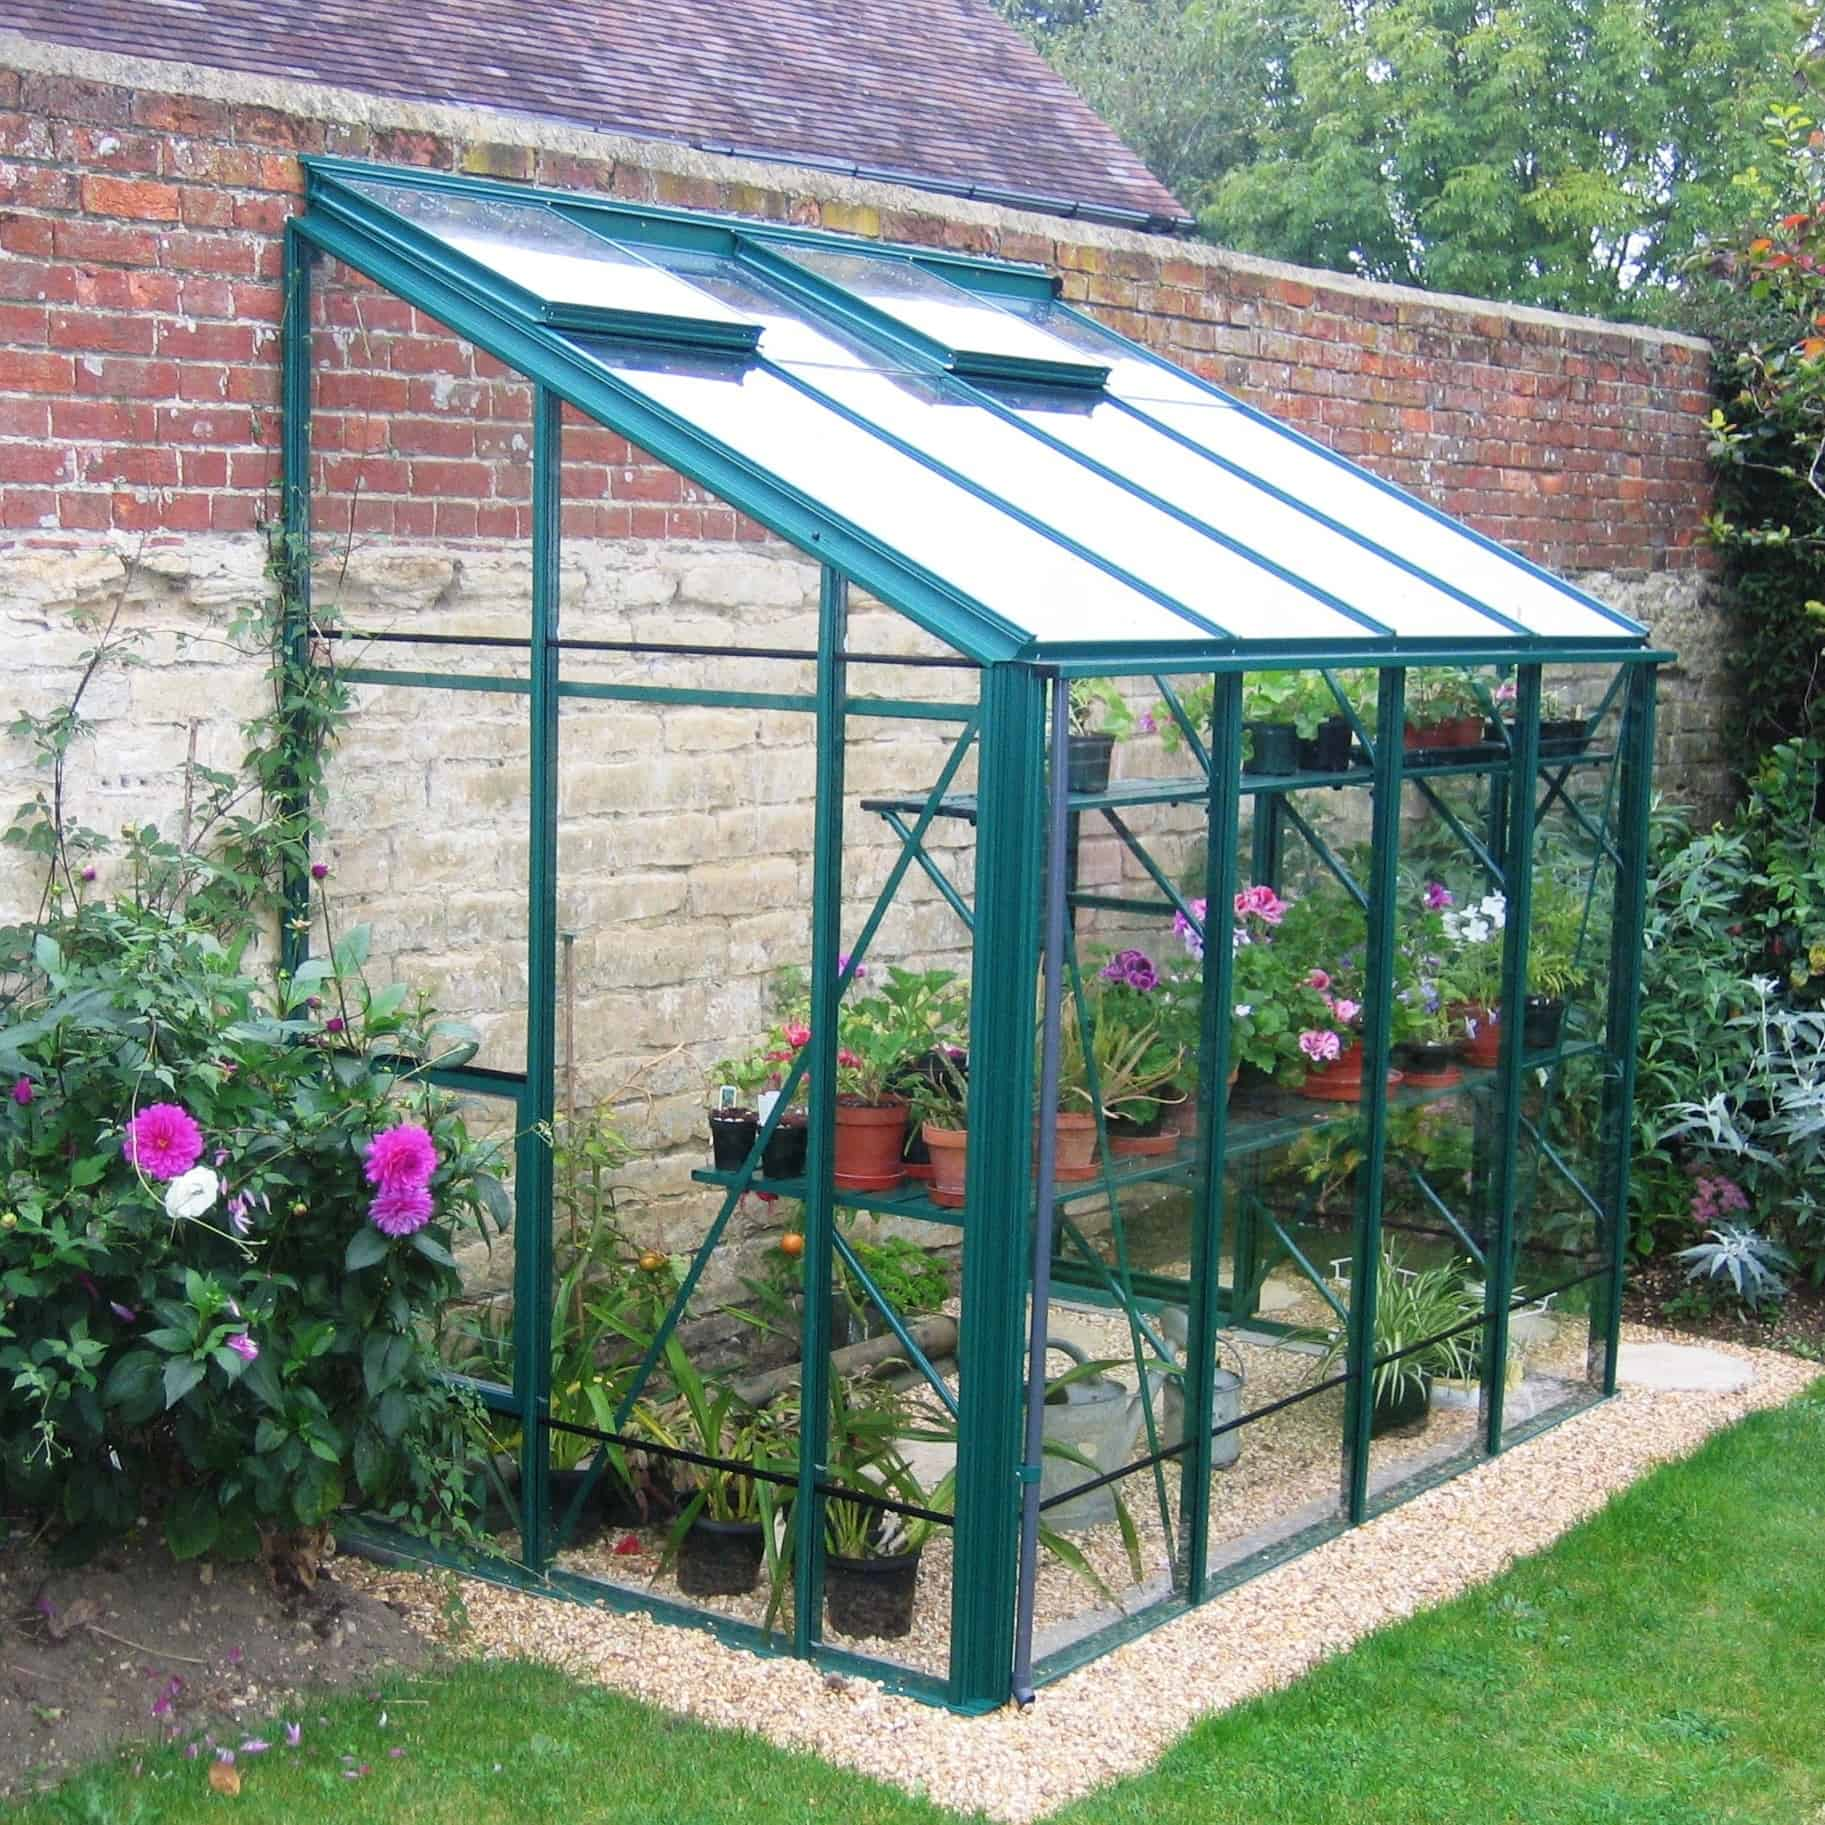 Robinsons Lean to 5 x 8 Green Aluminium Greenhouse